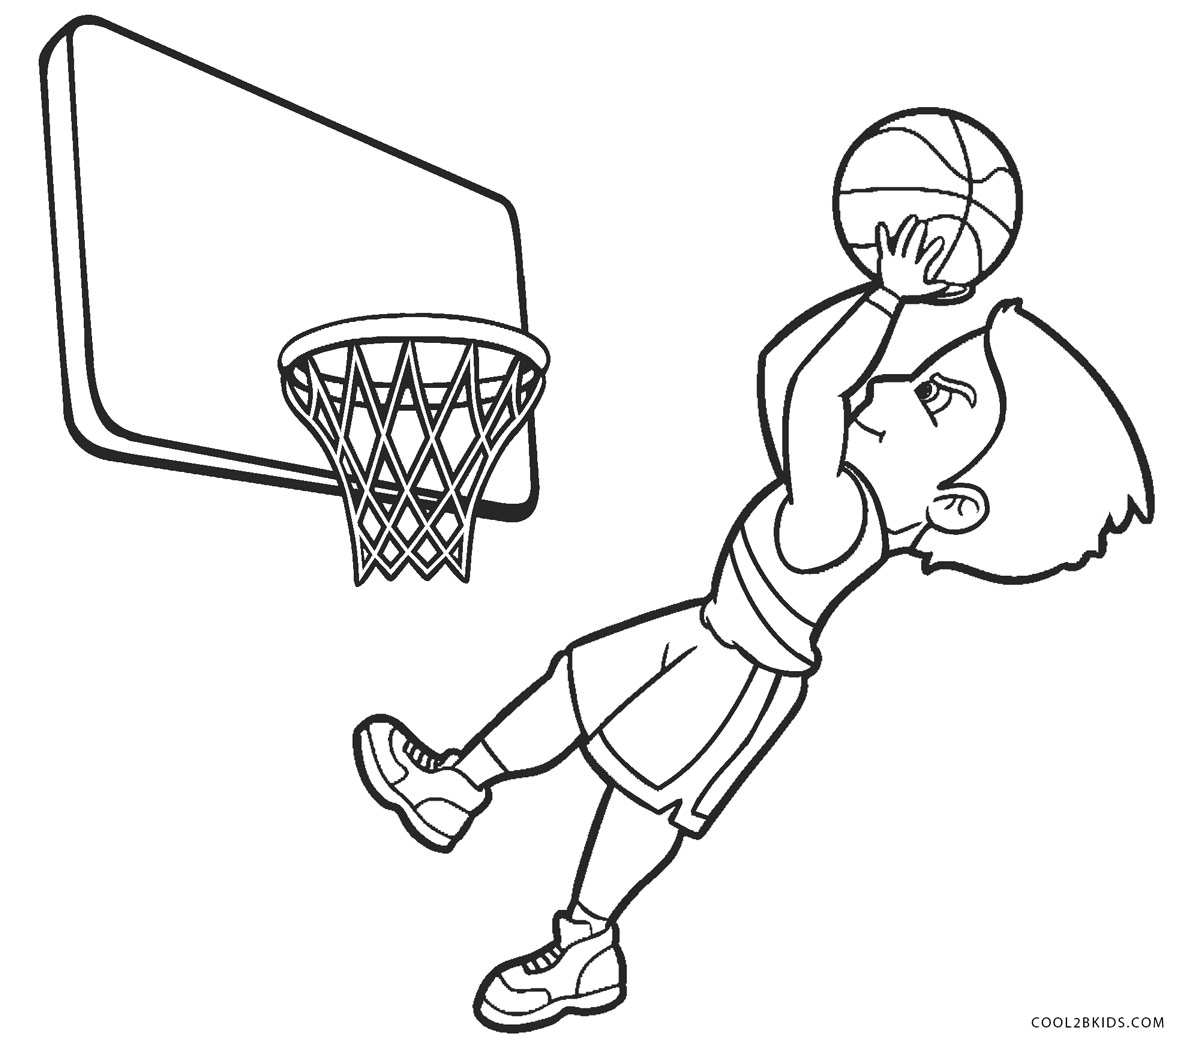 basketball coloring page cool basketball coloring pages transparent cartoon free basketball page coloring